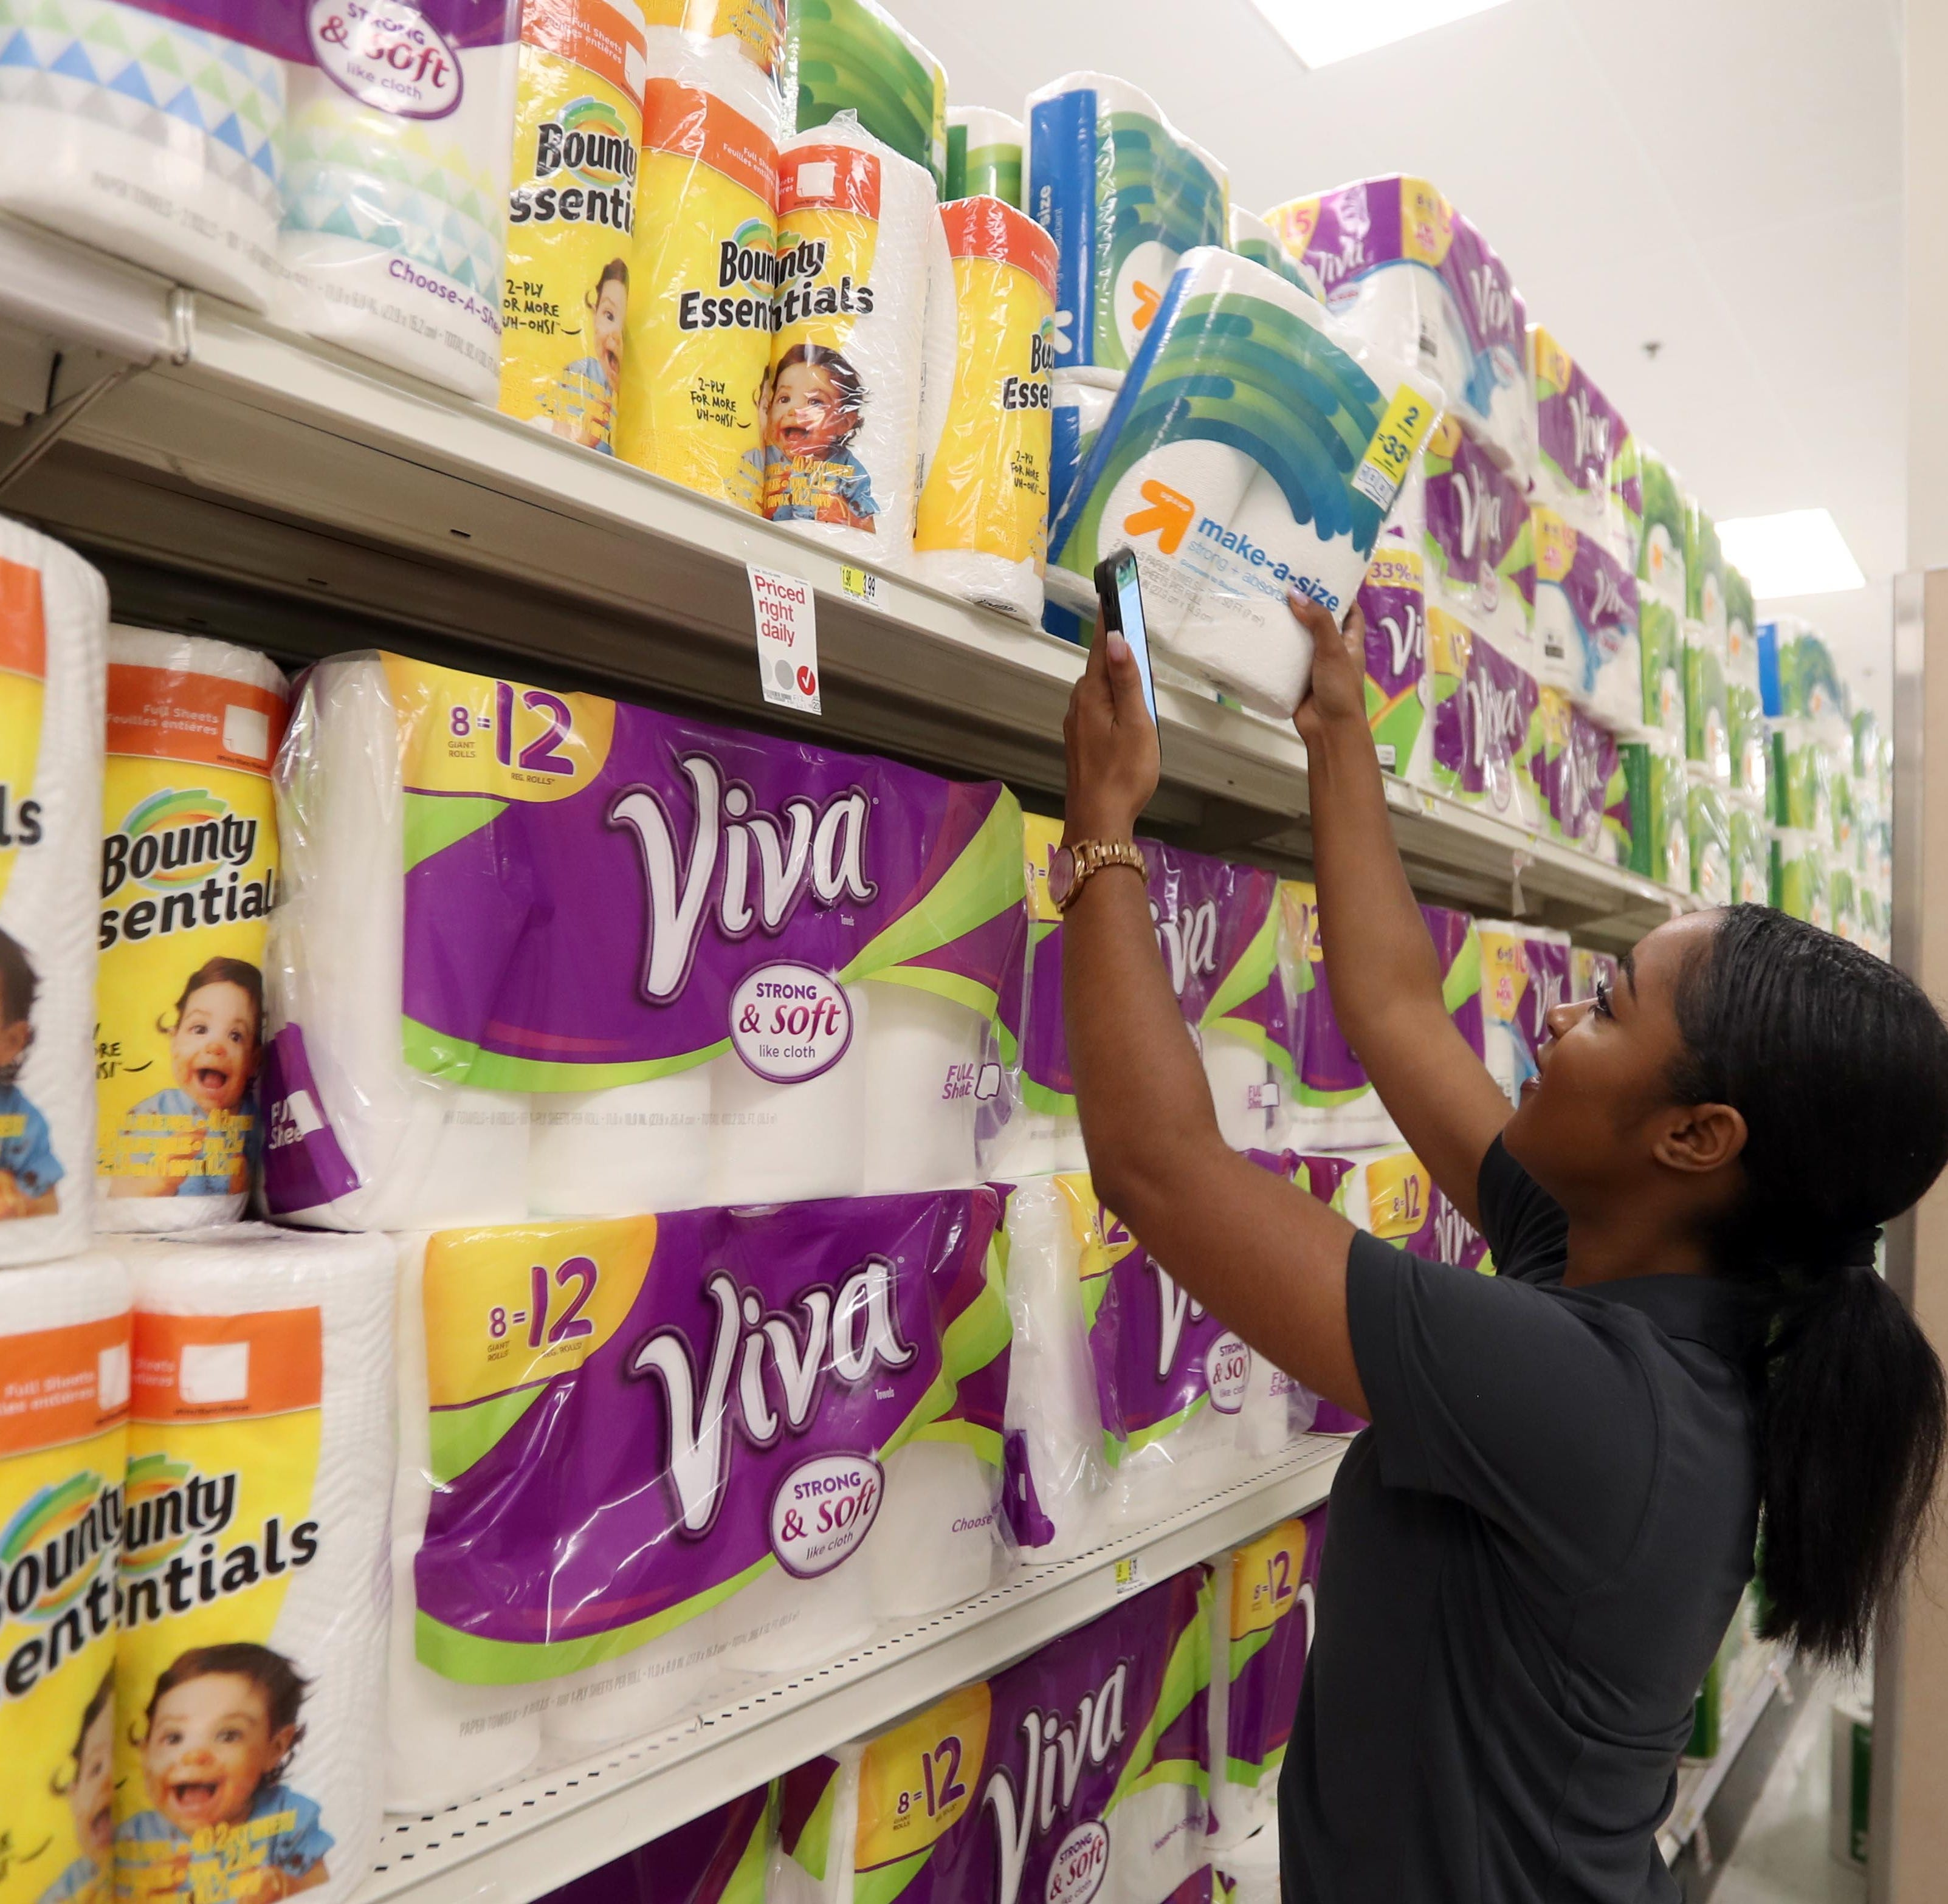 Destinee Rayford, City Launch manager for SHIPT, an app that allows shoppers to order online and have the order delivered to their home, uses the app to find the correct brand of paper towels for an order during a demonstration of the app at the Target in White Plains Aug. 14, 2018.